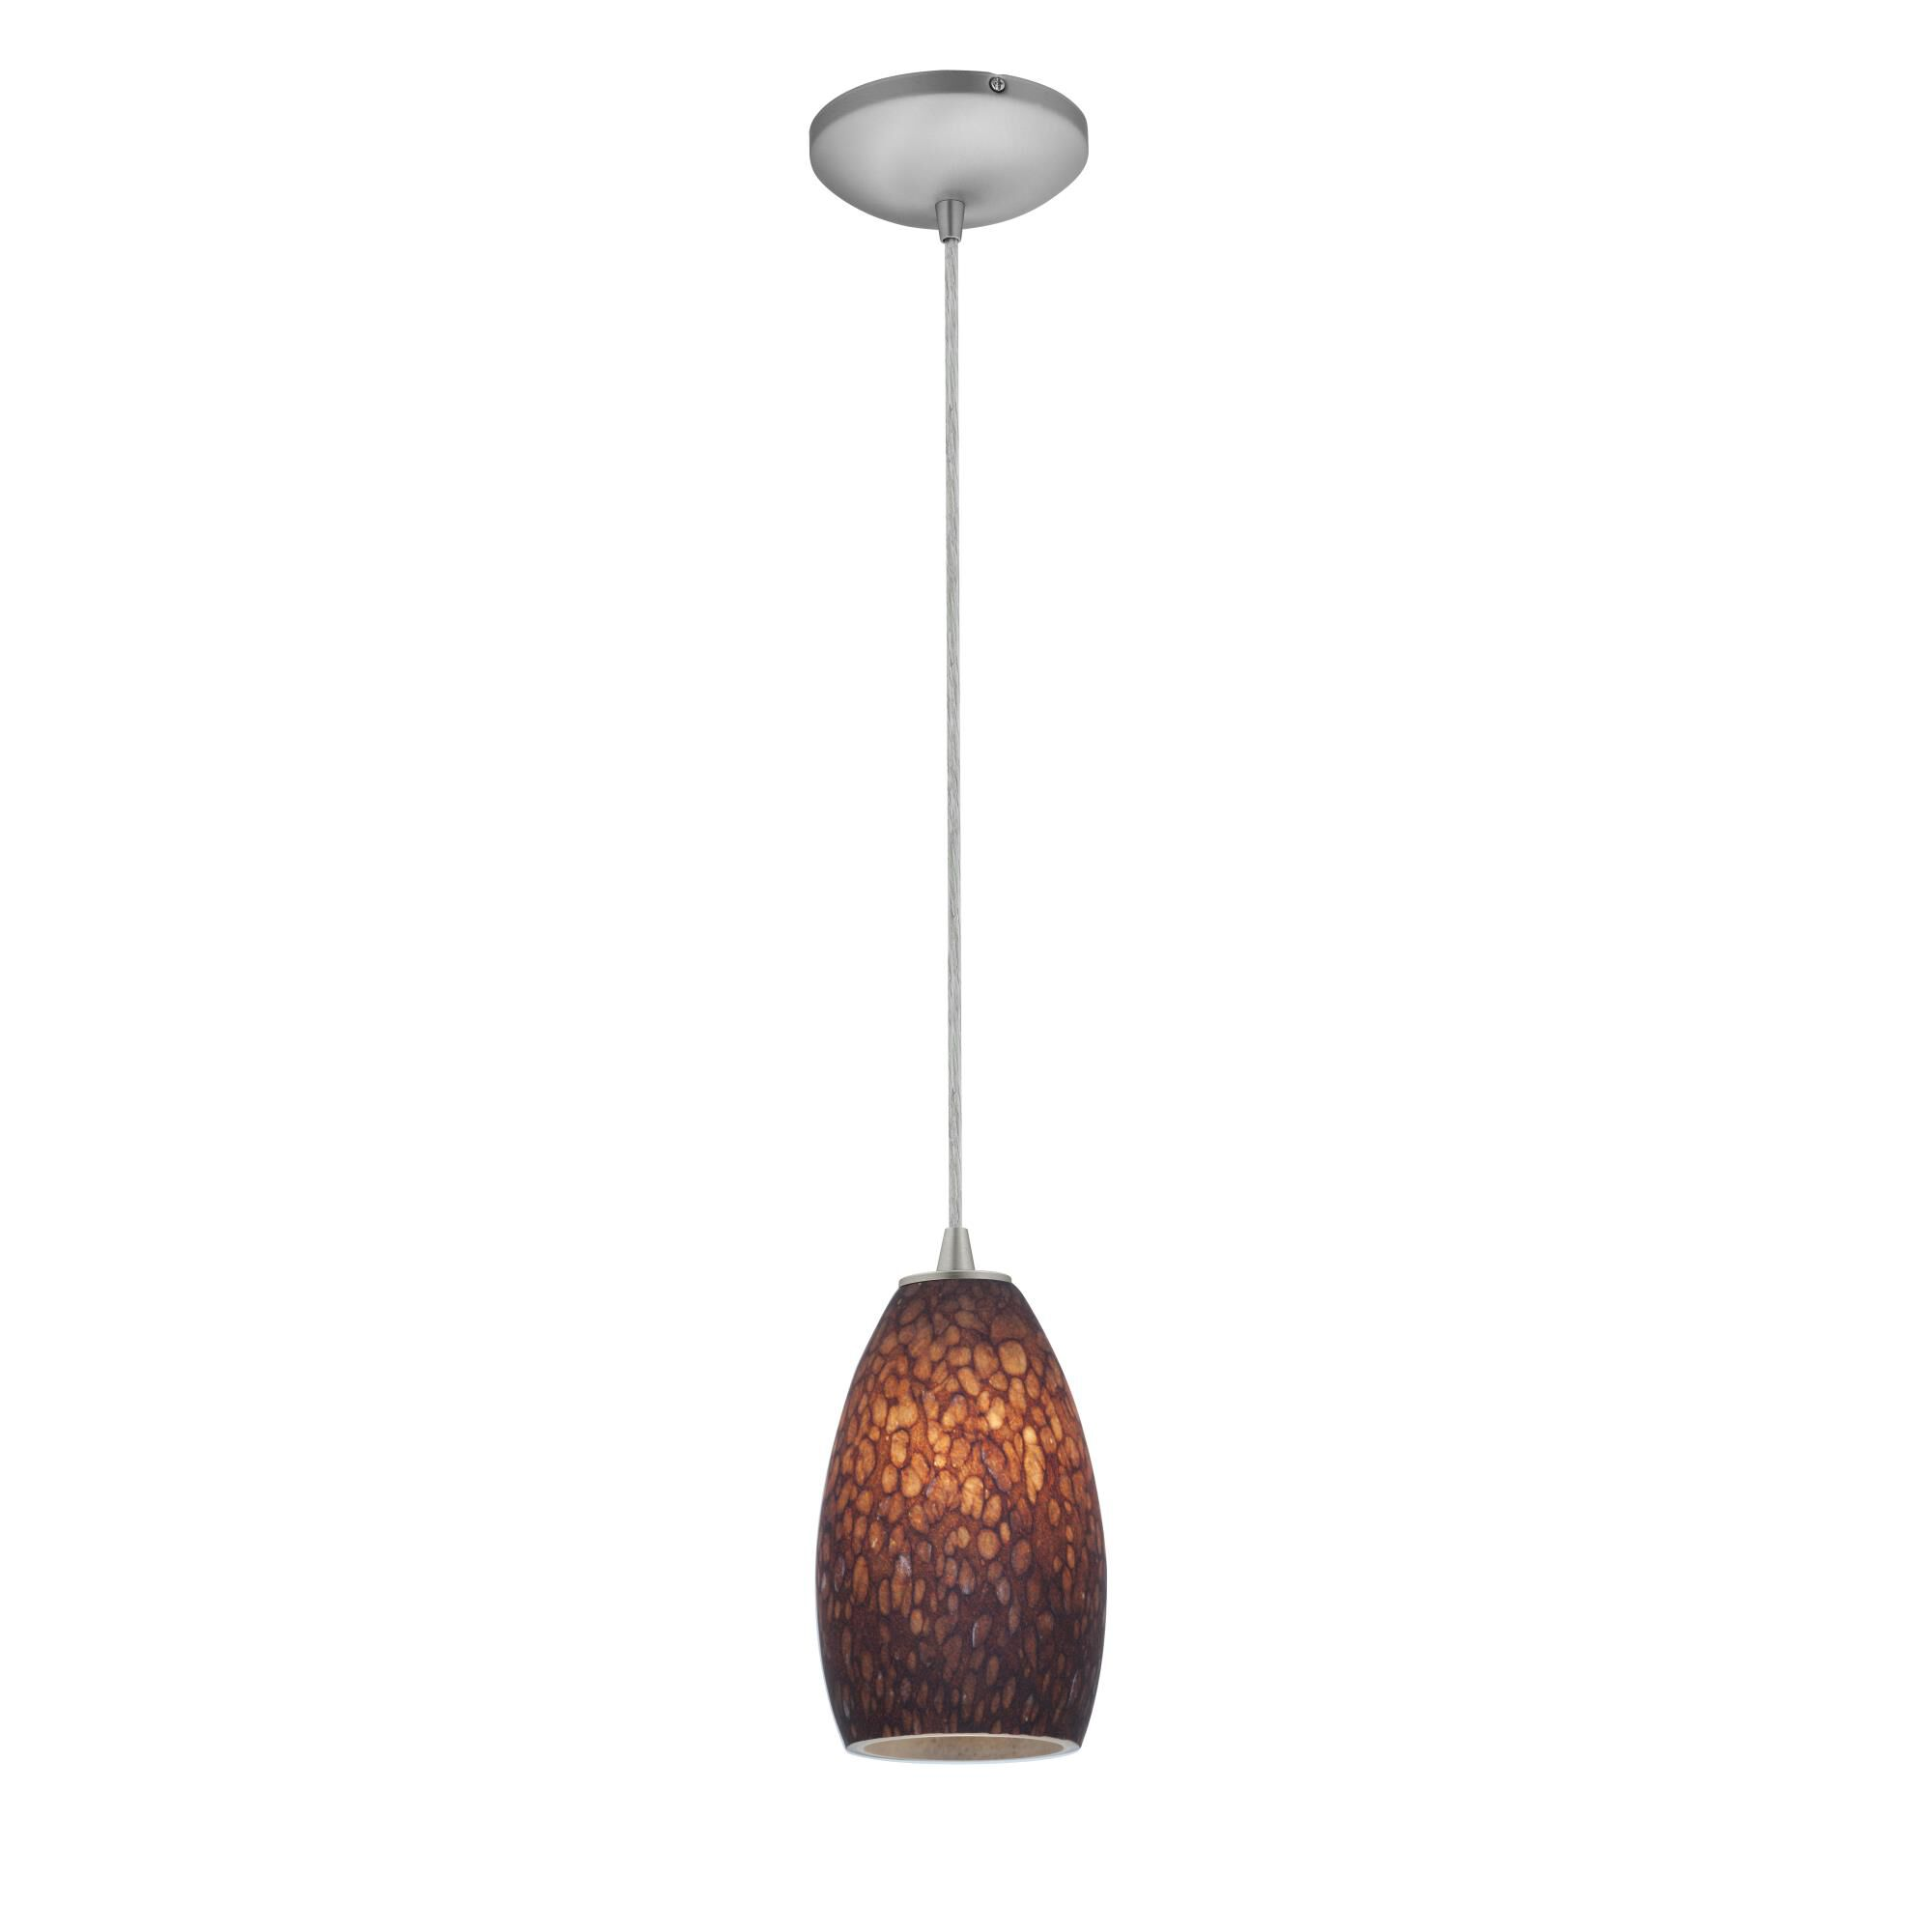 Access Lighting Champagne LED Mini Pendant Champagne 28012 3C BSBRST Modern Contemporary